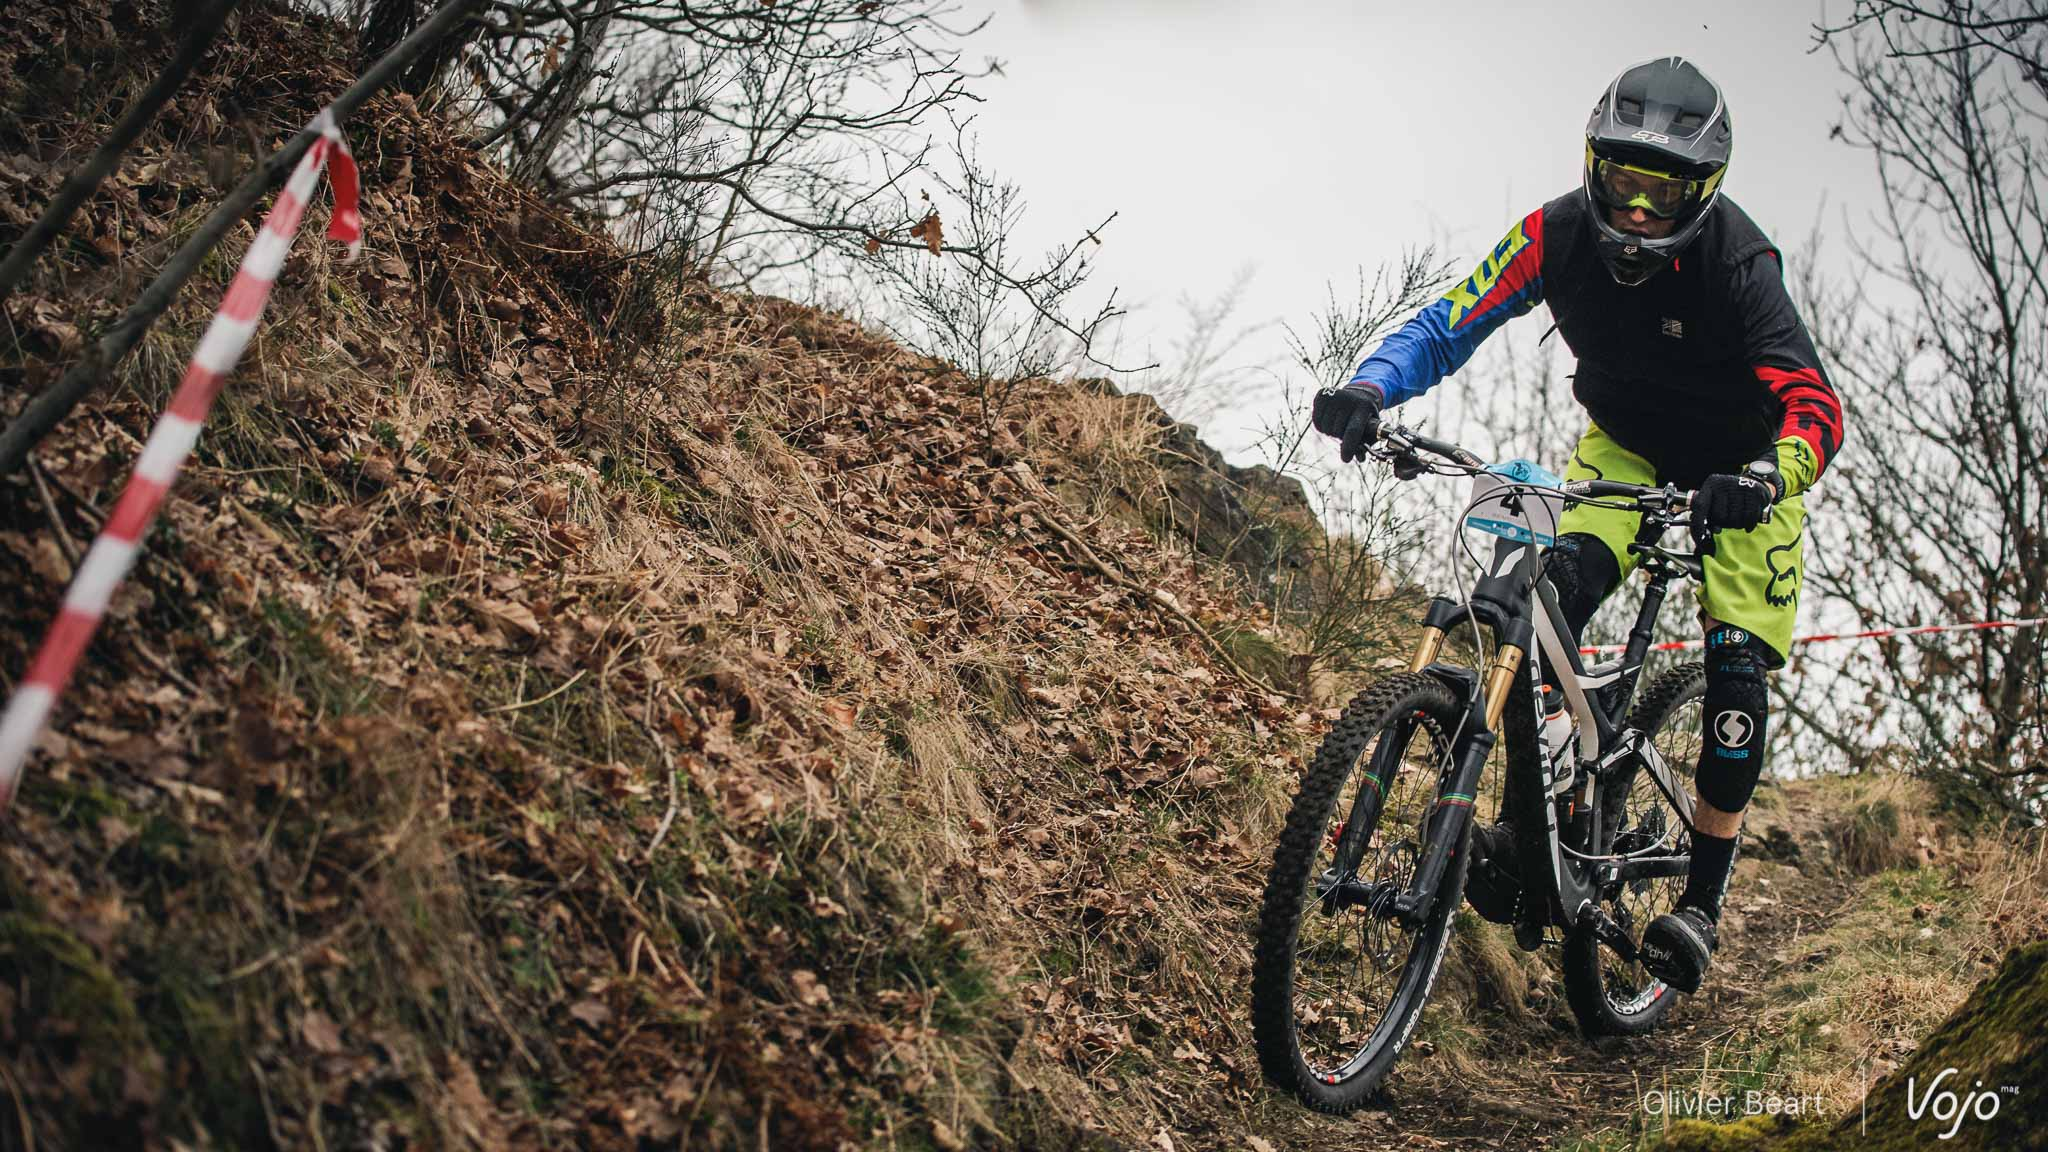 Belgian_Enduro_Cup_Chaudfontaine_2016_Copyright_OBeart_Vojomag-30